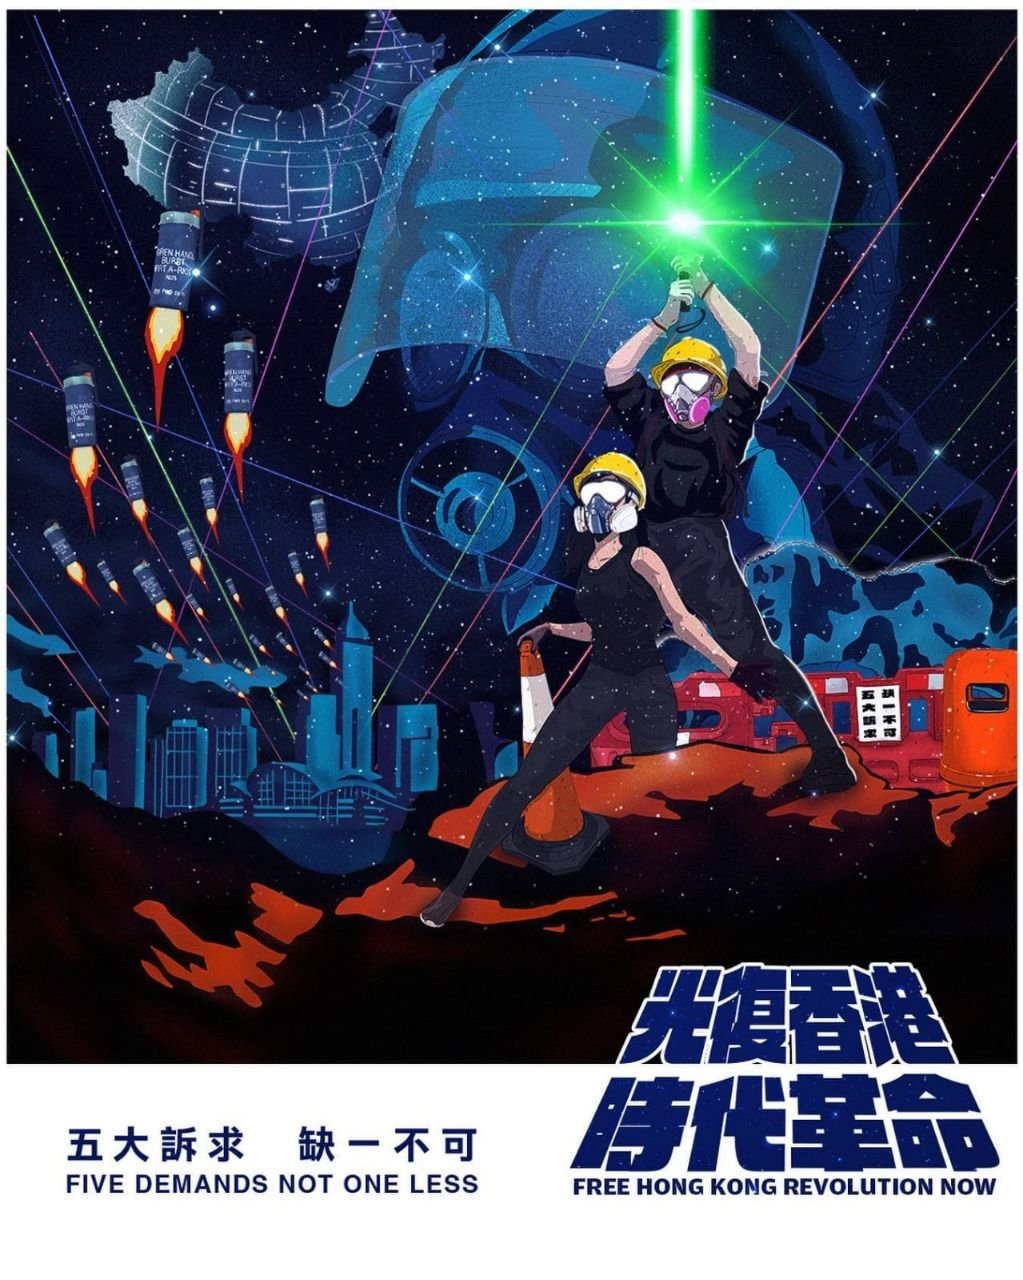 An illustration copying Tom Jung's Star Wars poster, with a male and female protestor taking the place of Luke and Leia, R2-D2 replaced with a Hong Kong style orange trash bin, and flying tear-gas canisters instead of X-wings. Vader in the back has been replaced with a gas-masked riot cop.